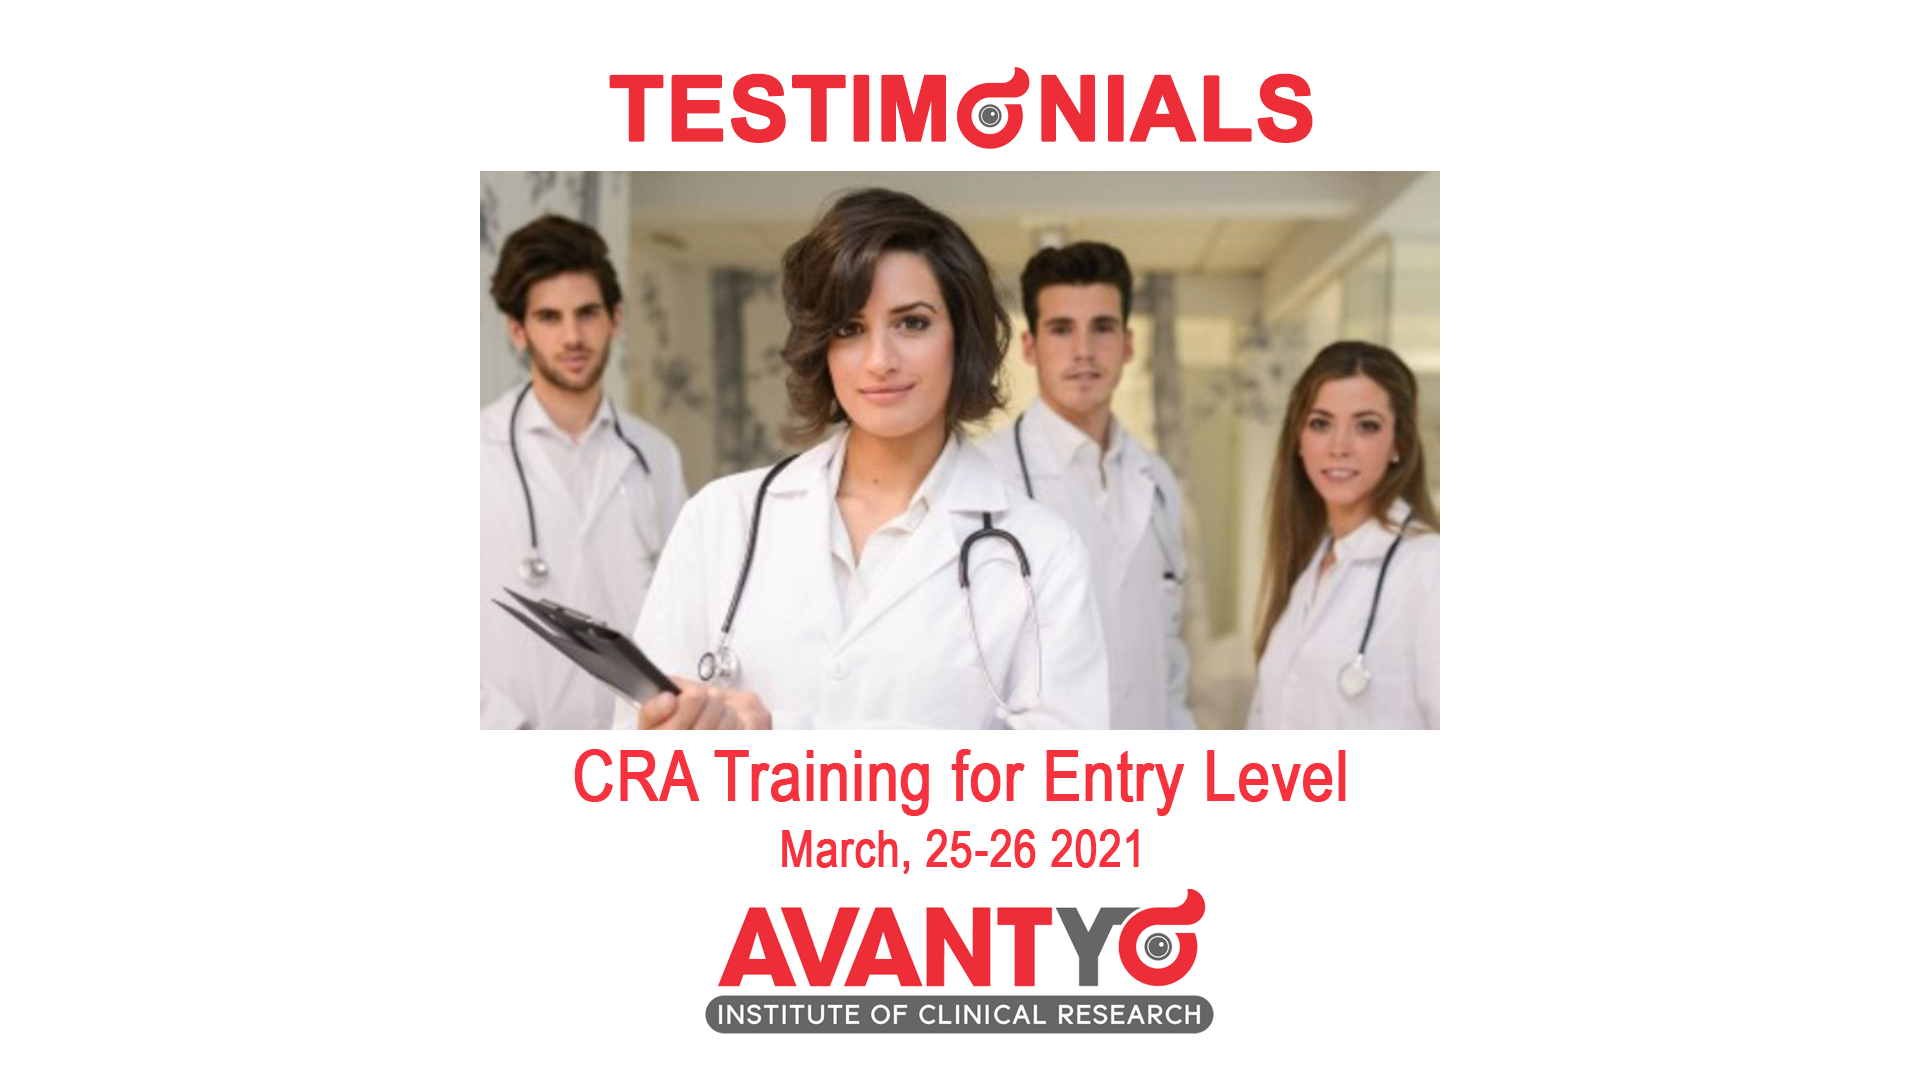 TESTIMONIALS - CRA Training for Entry Level - March, 25-26 2021